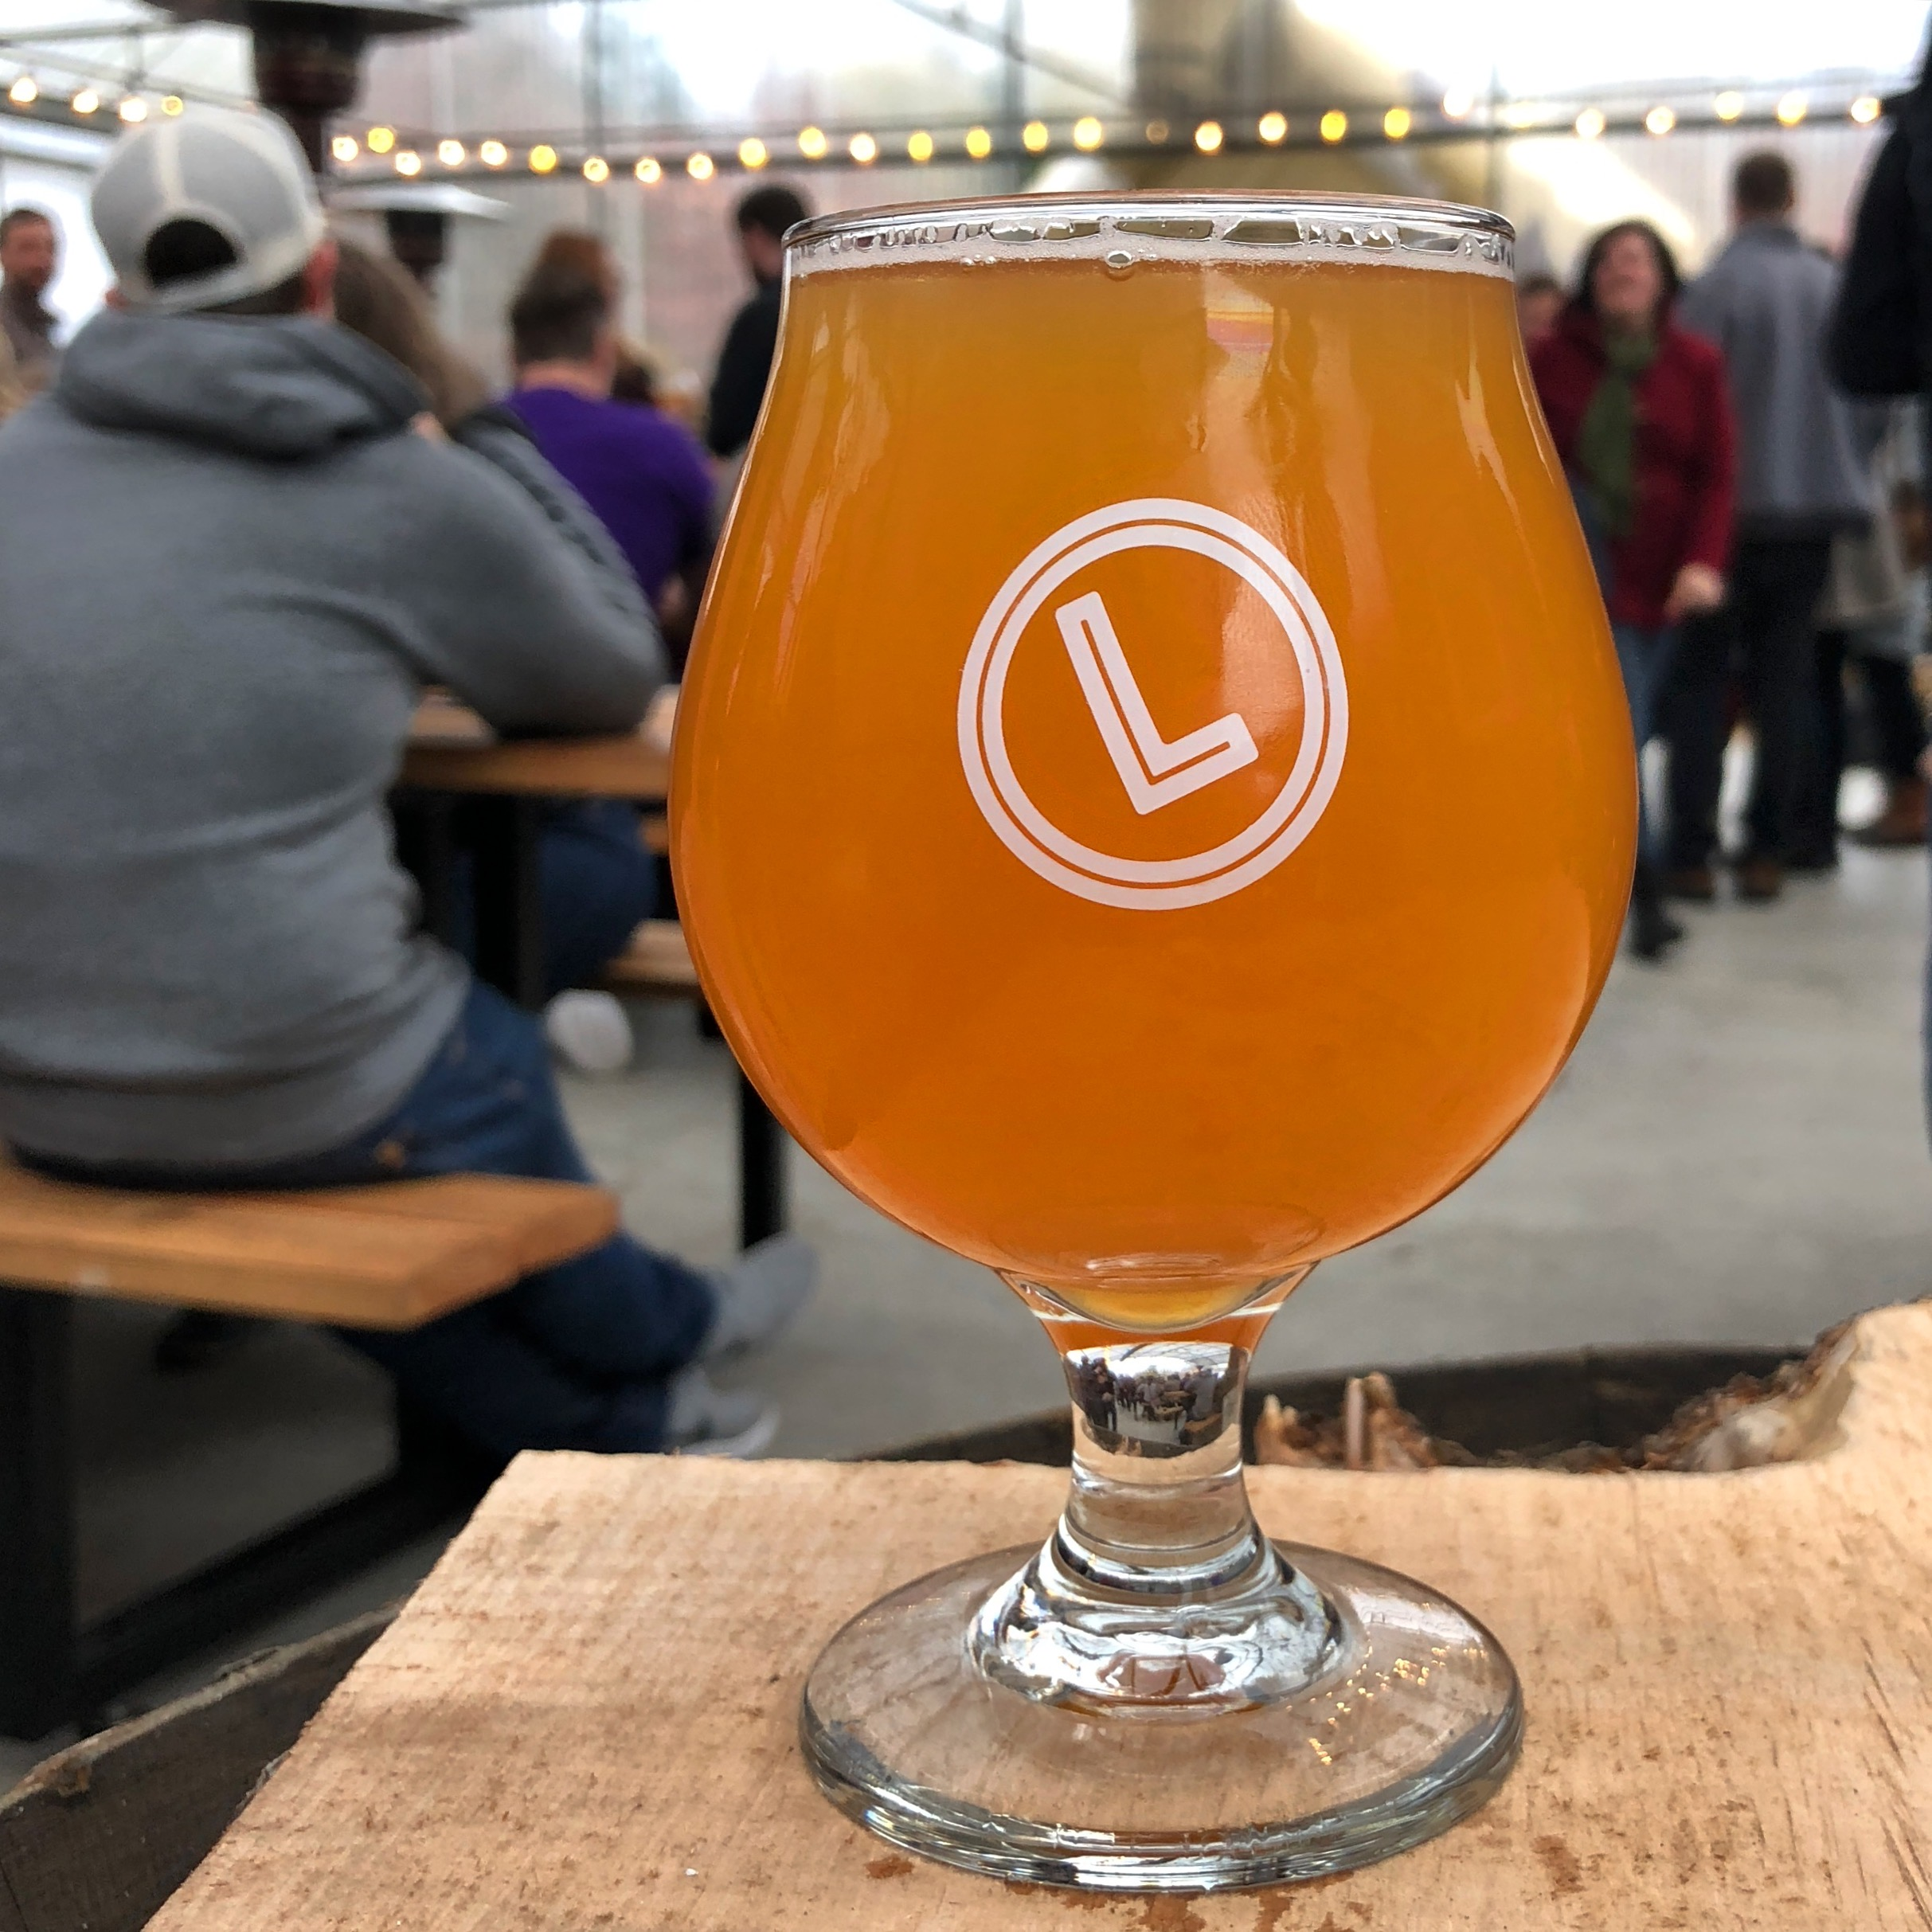 A Hazy IPA at Level Beer's Grand Opening.